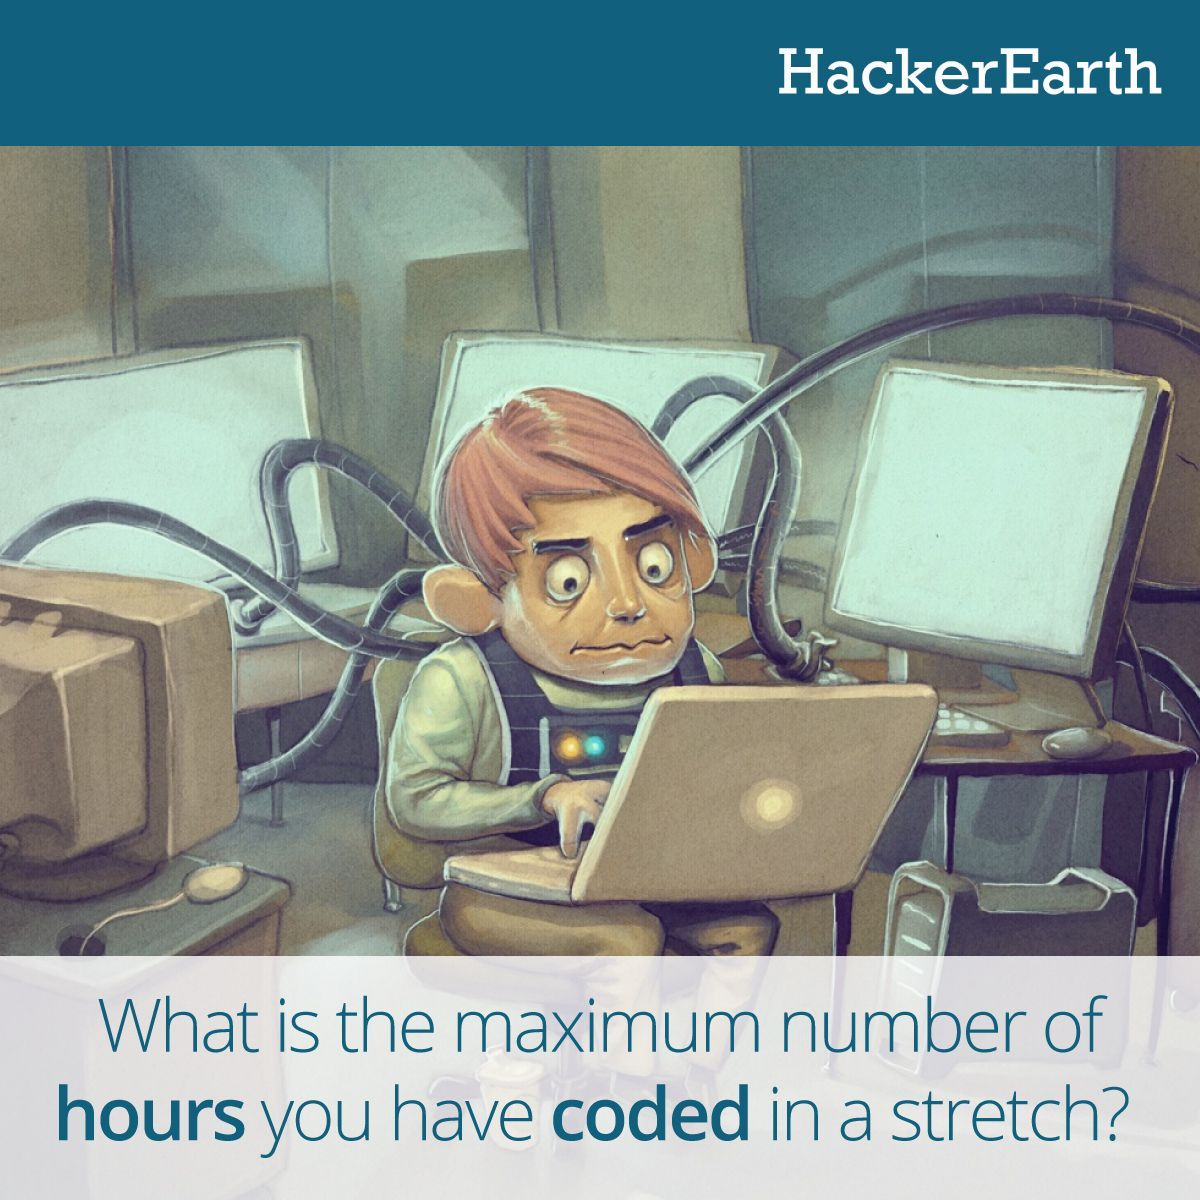 What is the maximum number of hours have you coded?